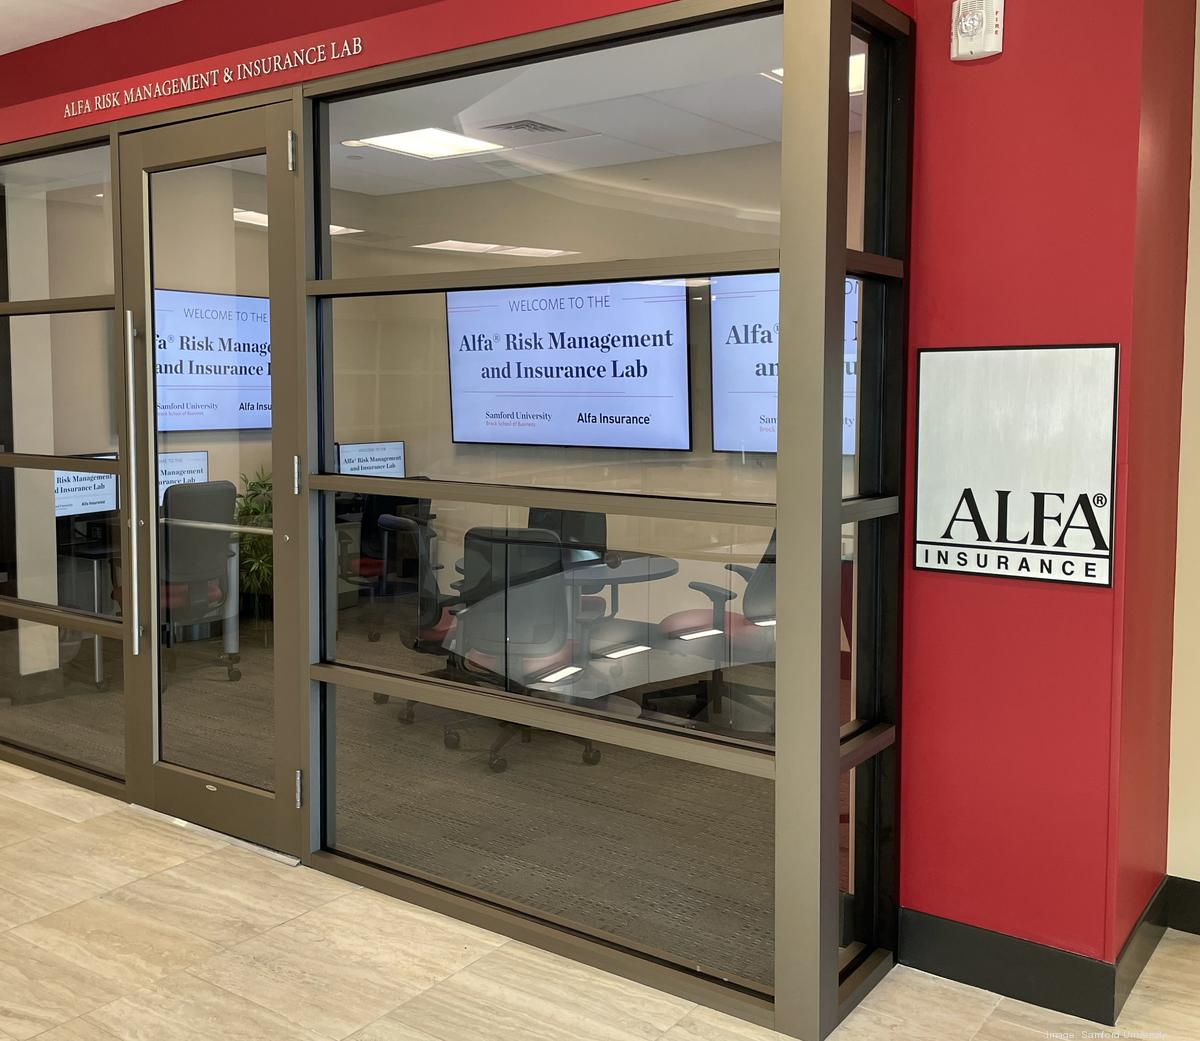 Samford University partners with Alfa on new lab for students as insurance industry gears up for increased job openings - Birmingham Business Journal